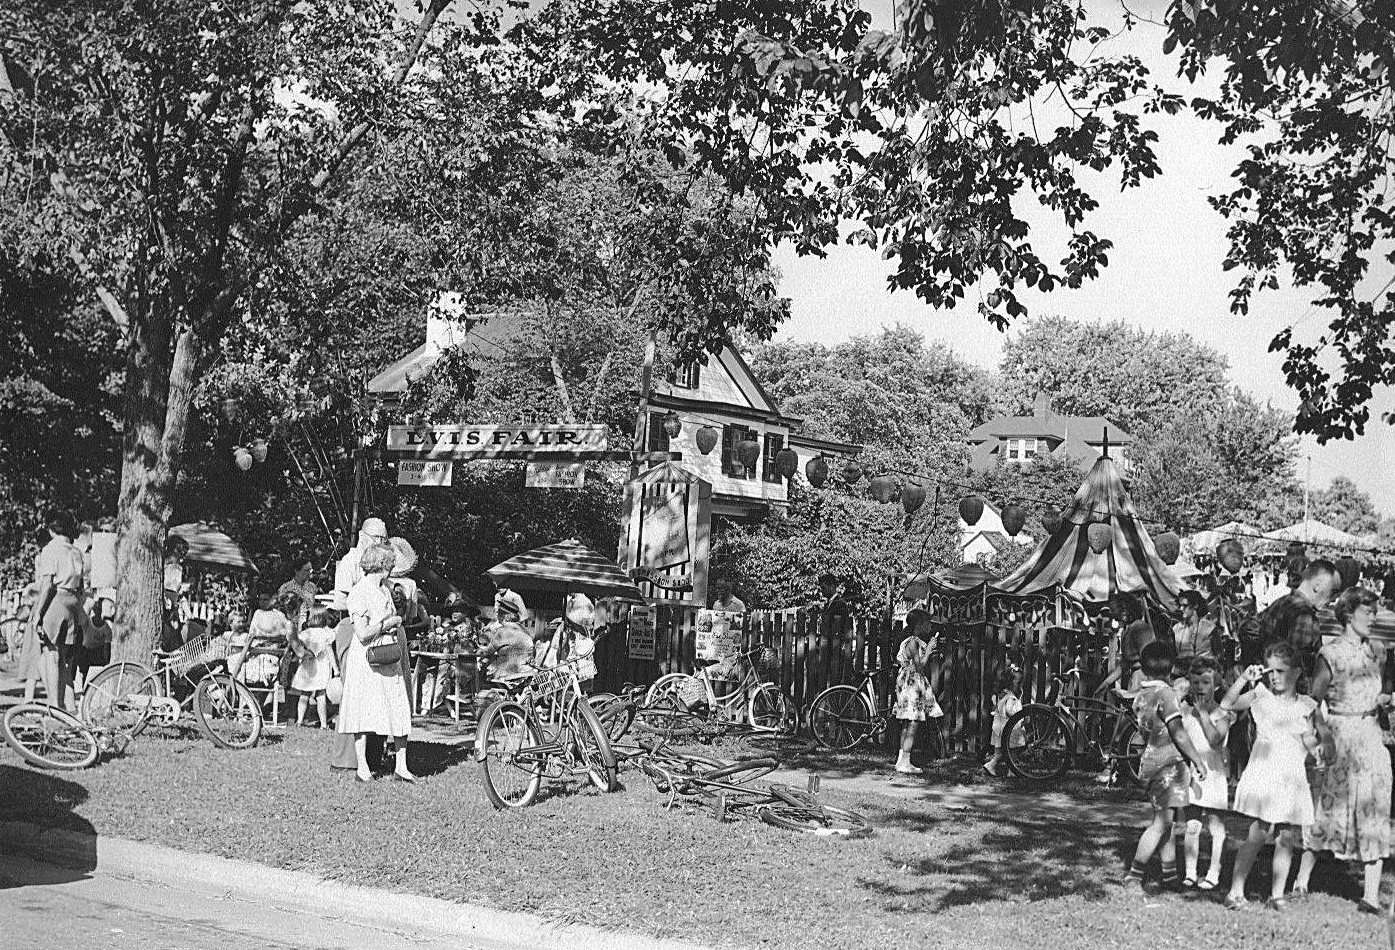 Early Fair at Mulford Farm